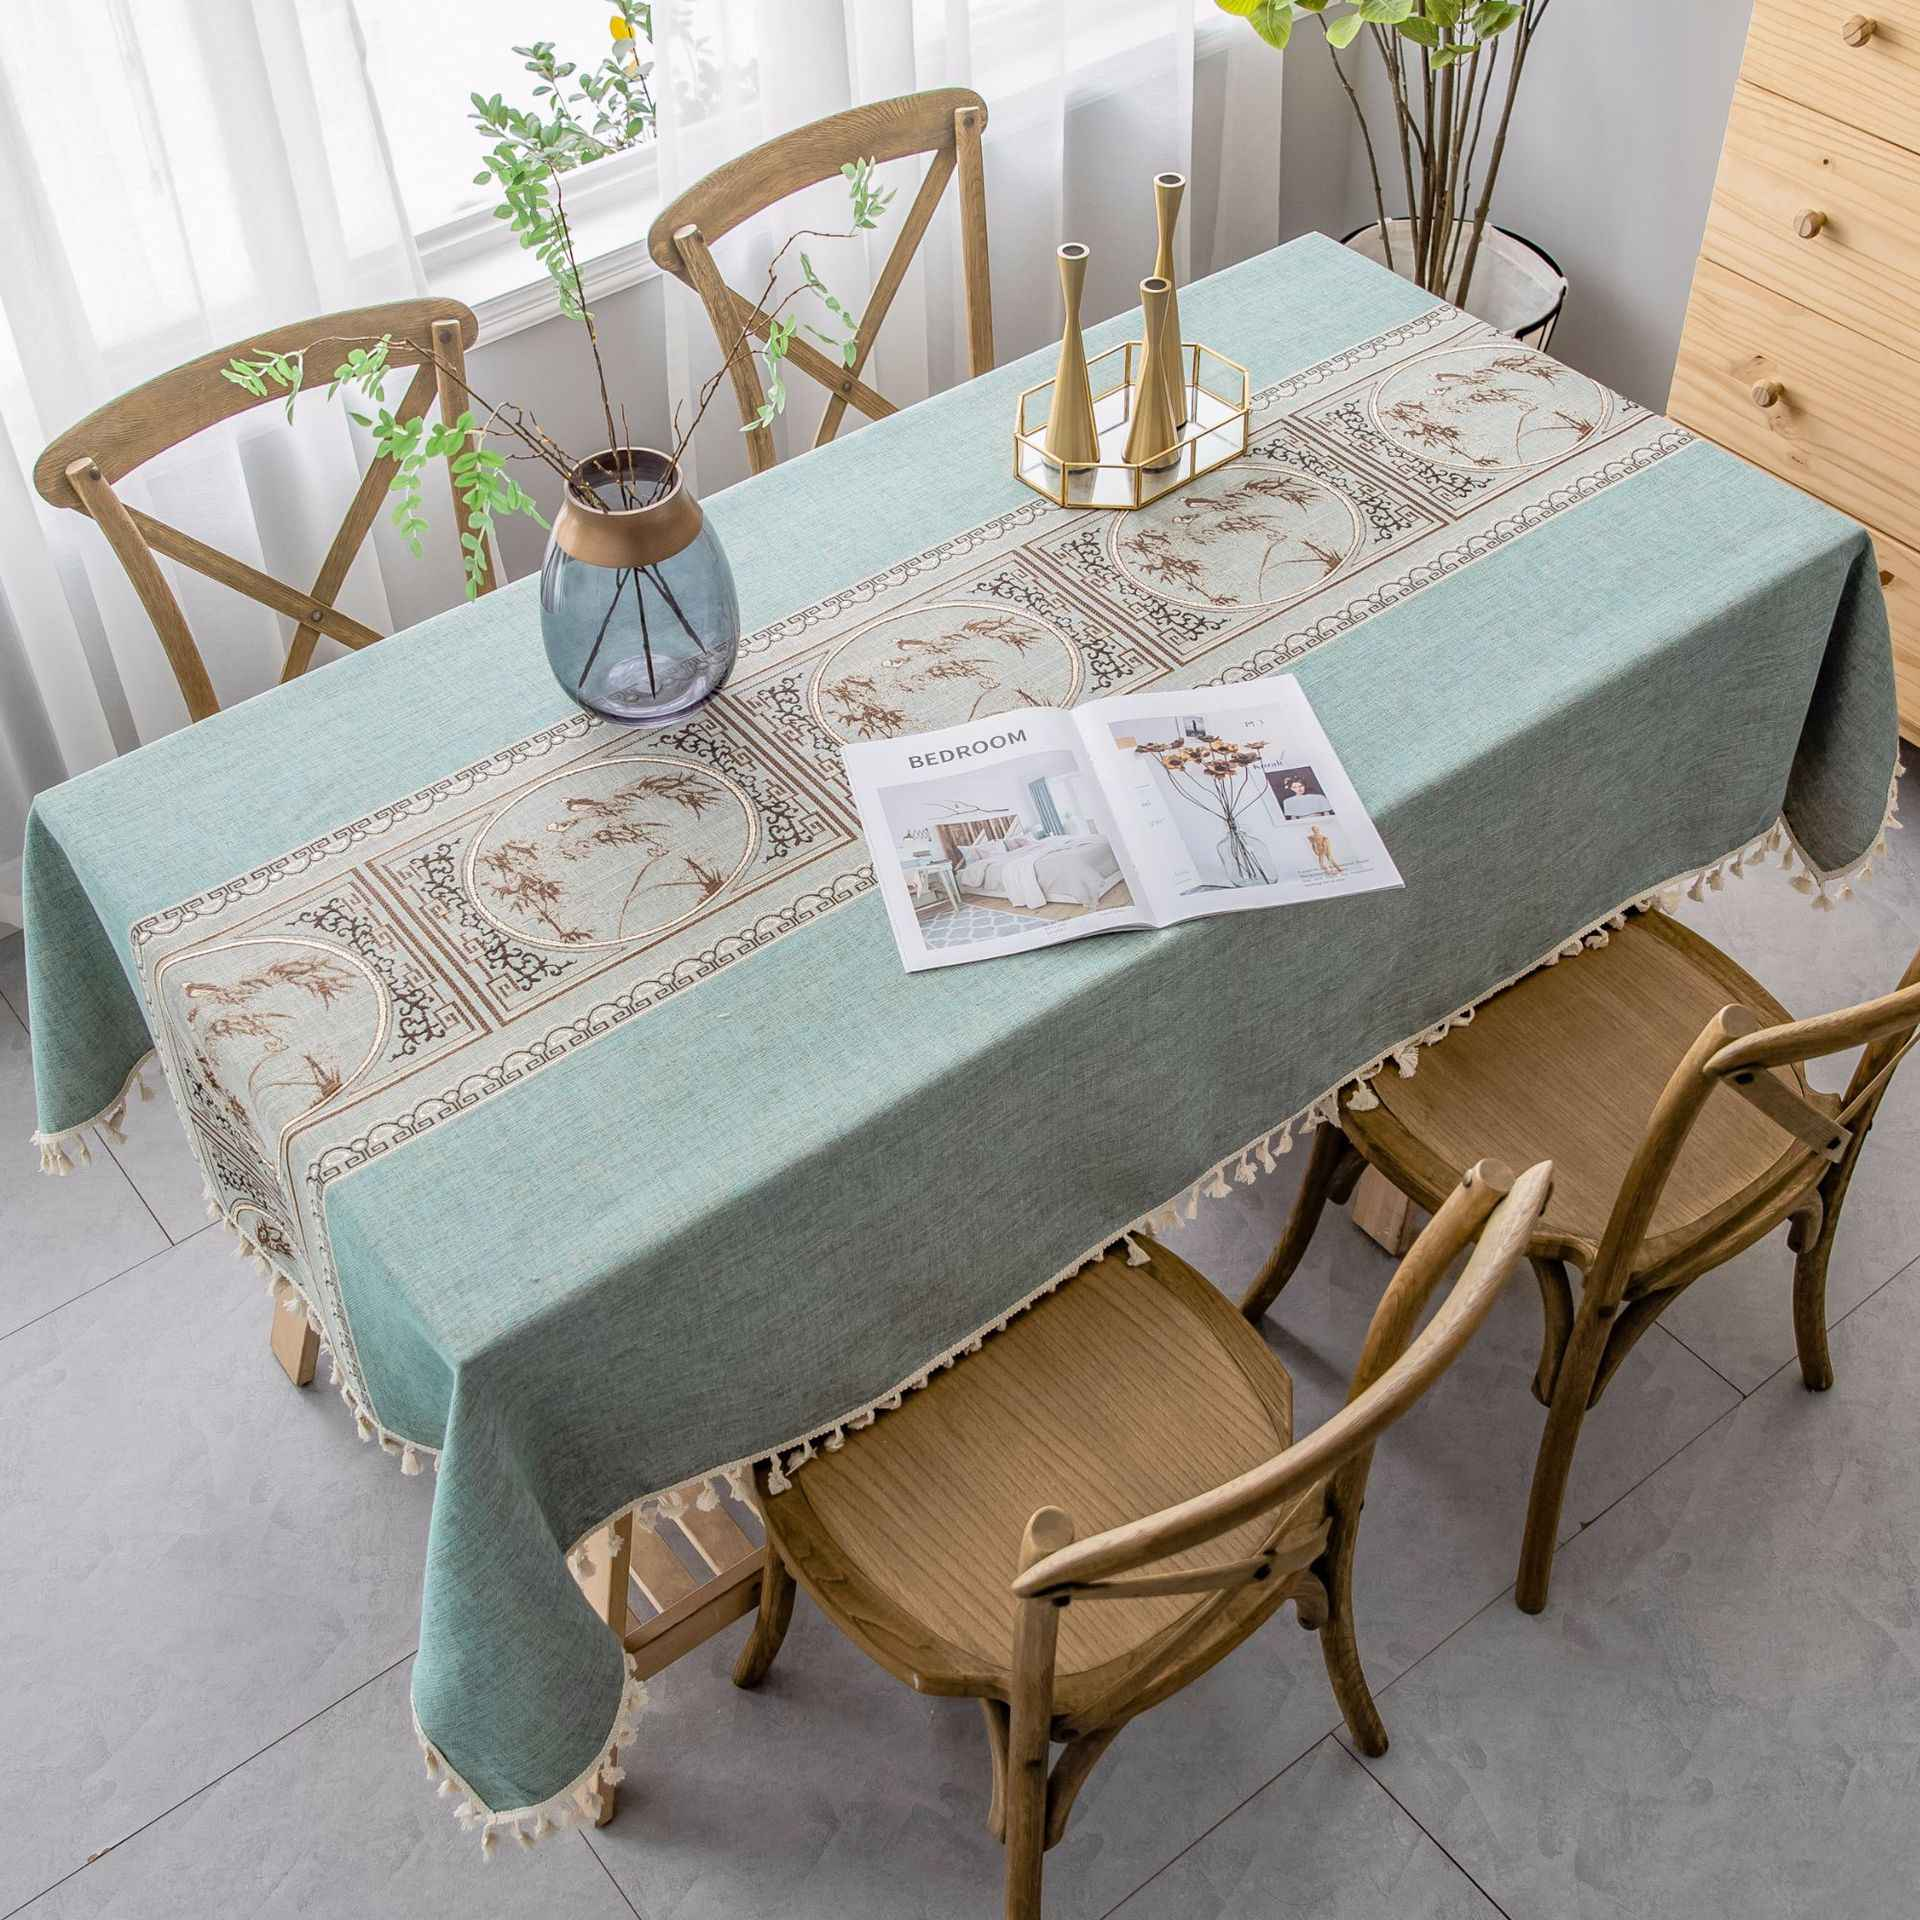 Luxury Rectangle Tablecloth Upscale Embroidered Relief Painting Pattern Table cloth Pendant Tassel Christmas Decor Table Cover